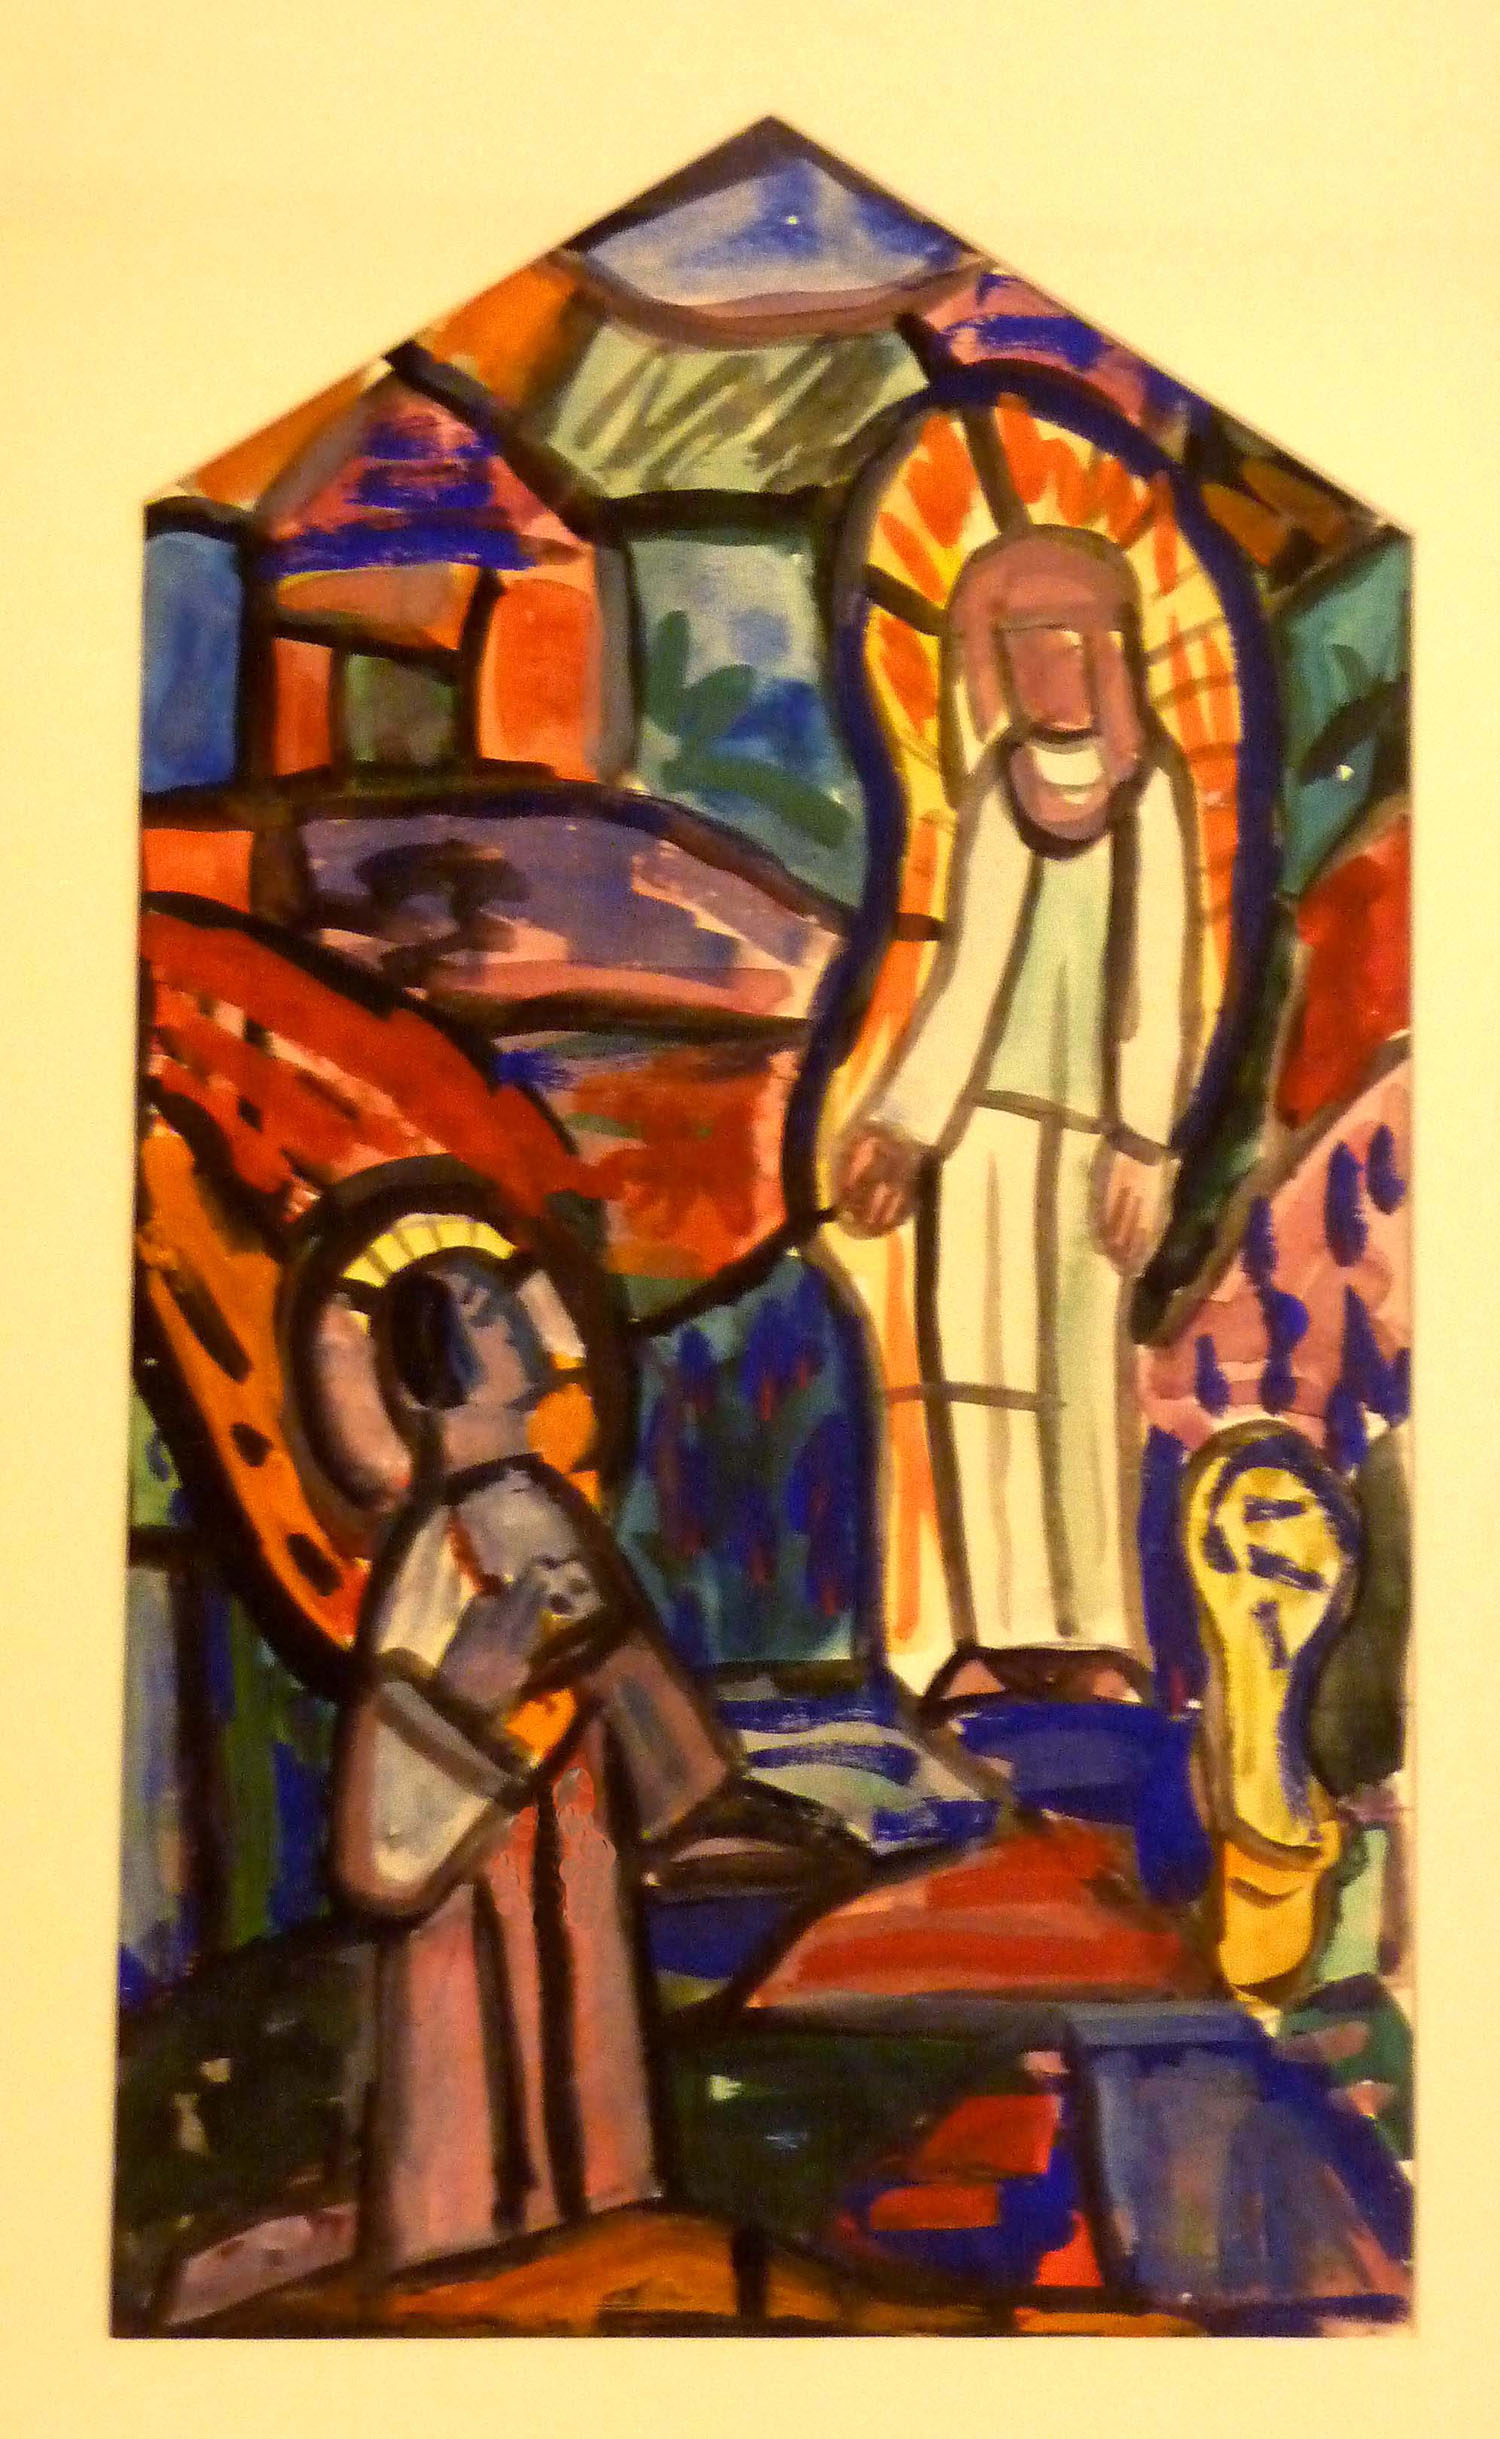 Evie Hone_-_Study for a Stained Glass Panel.jpg